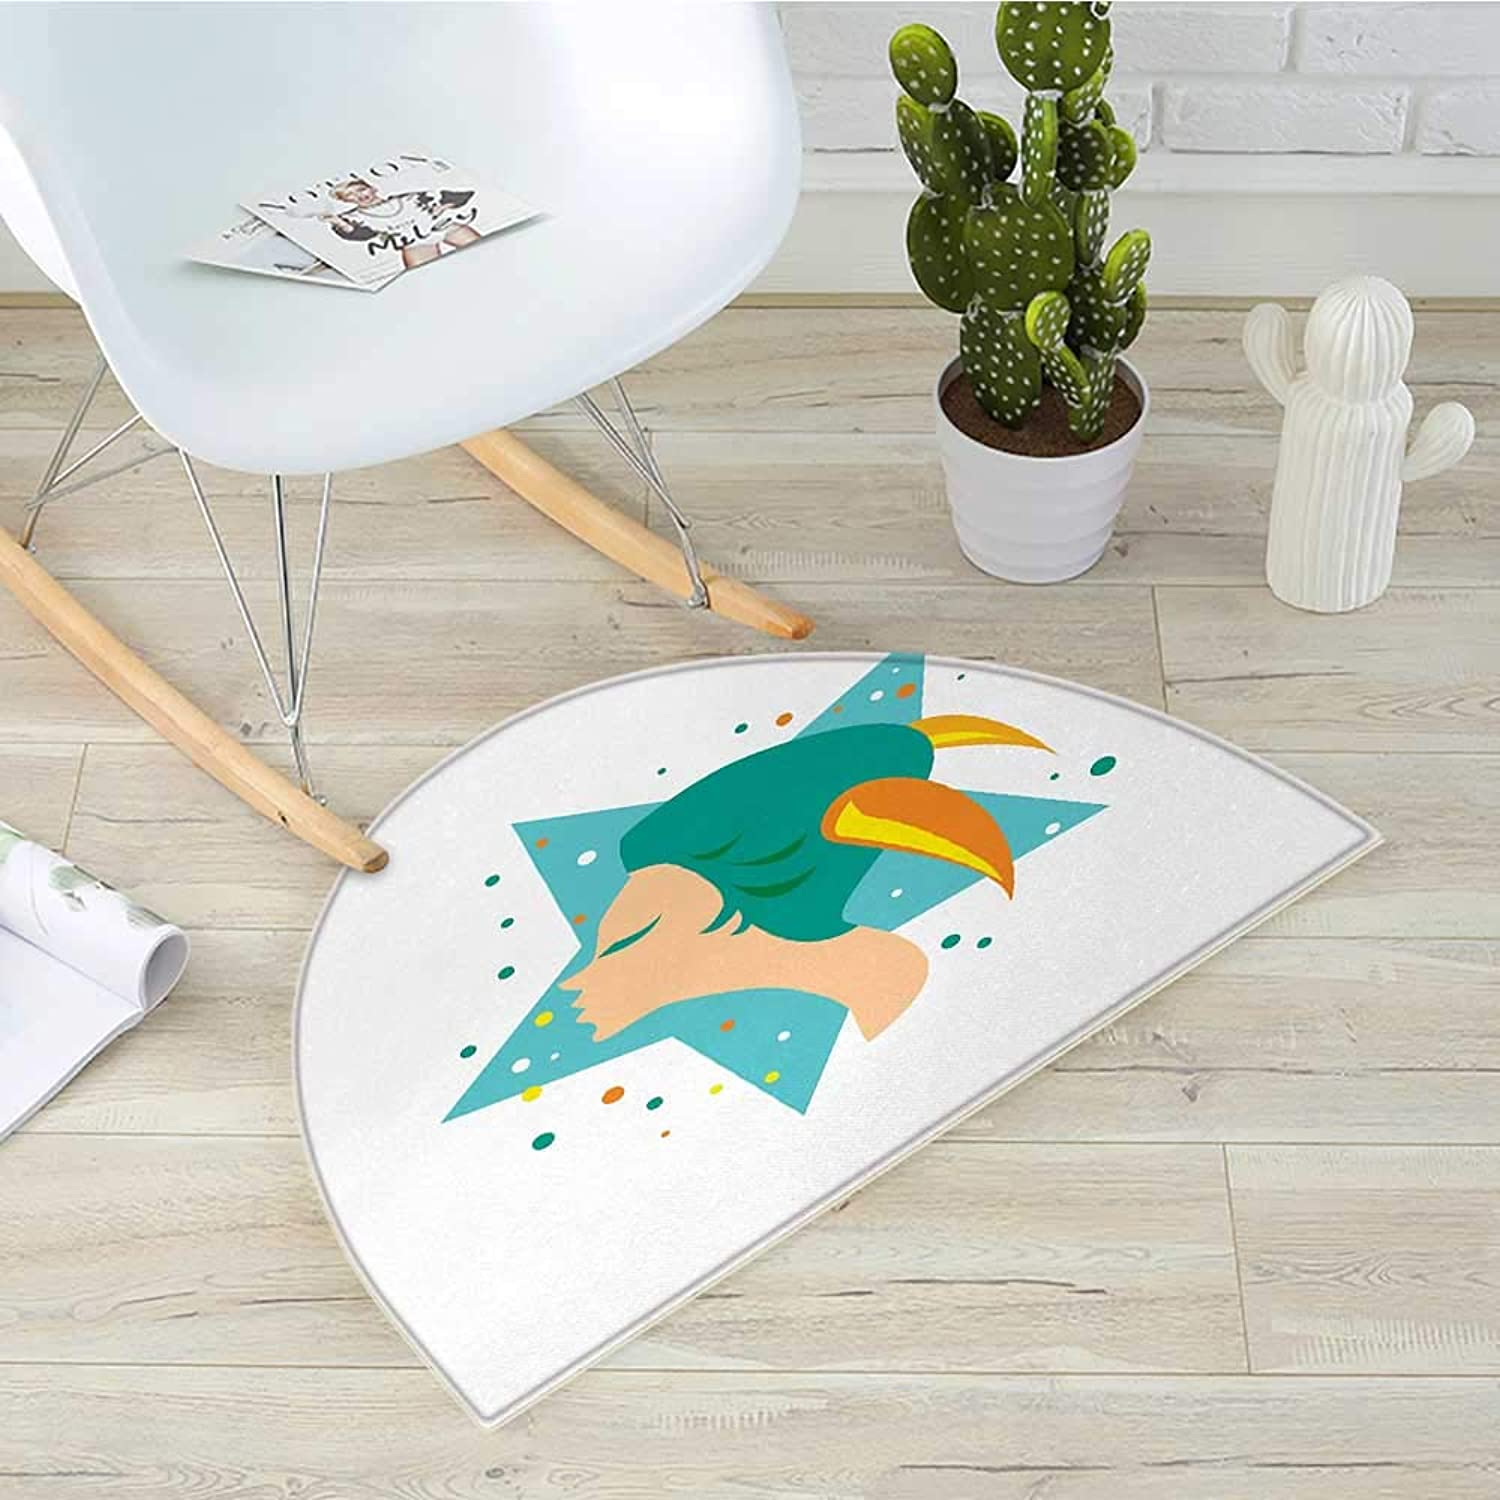 Zodiac Capricorn Semicircle Doormat Cartoon Woman with Horns on a Giant Stars with colorful Dots Background Halfmoon doormats H 39.3  xD 59  Multicolor